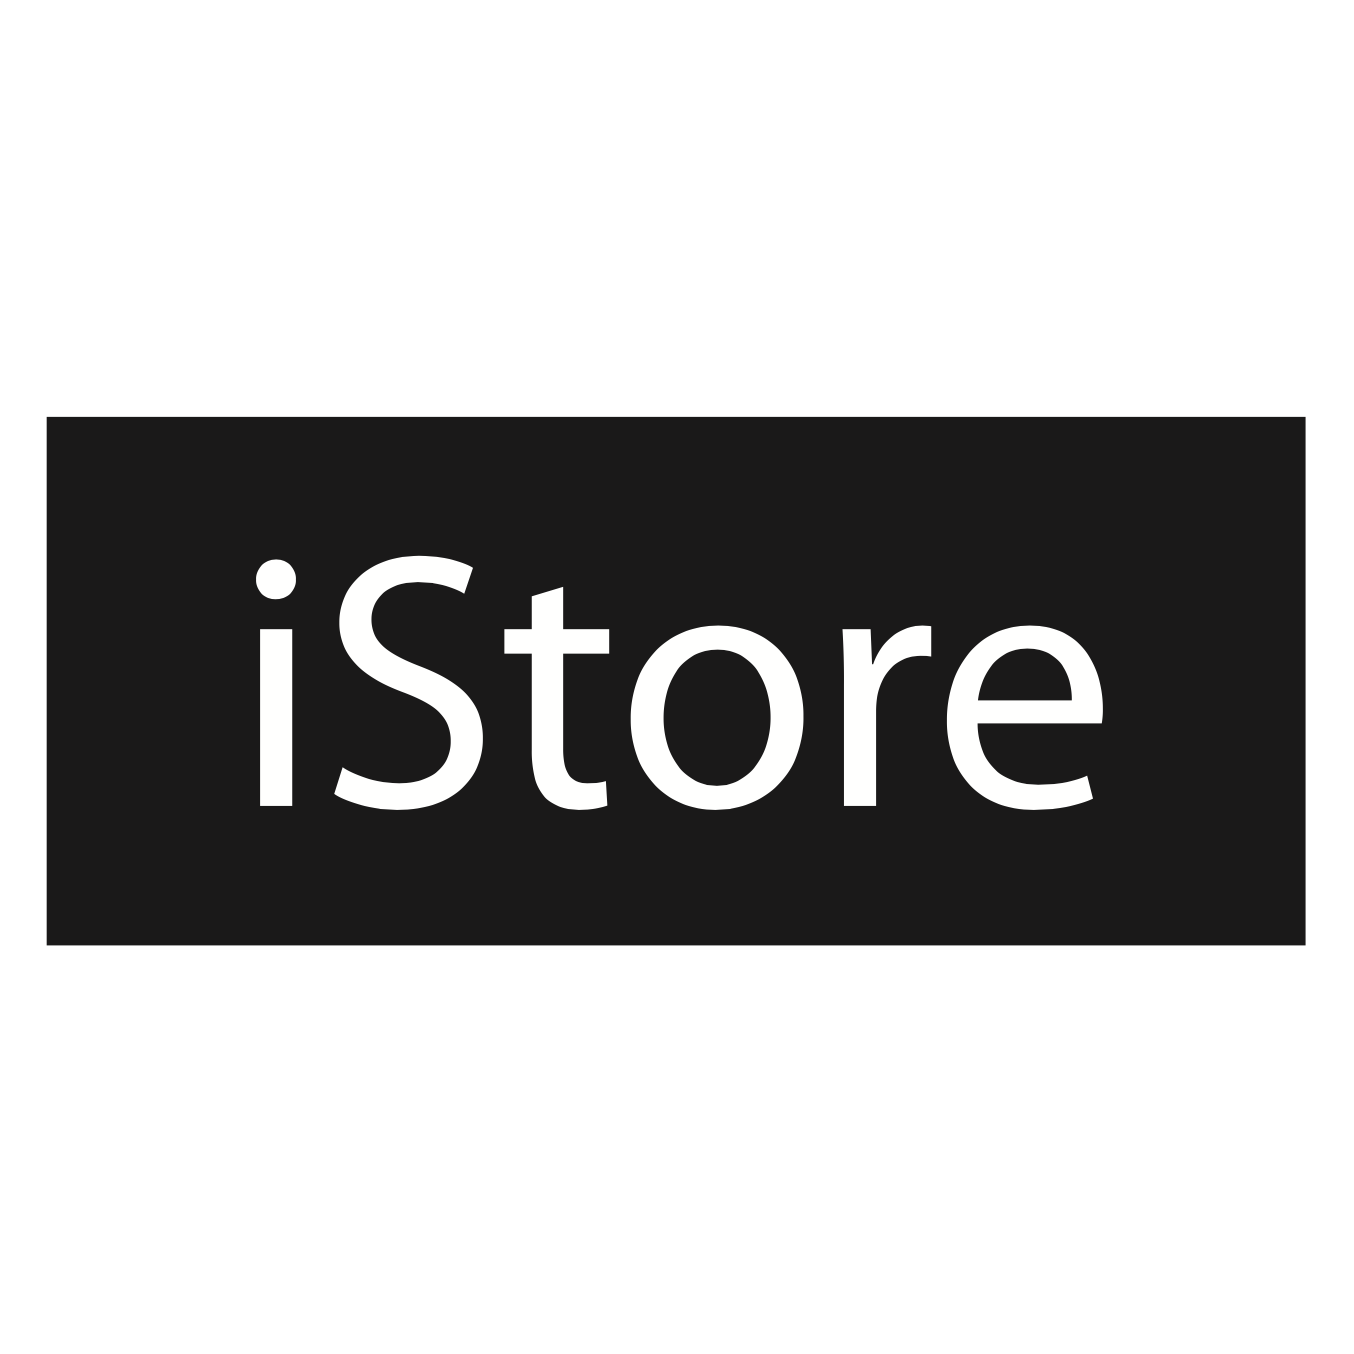 No matter which major network you're with or where you signed up, you can upgrade or take out a new contract at iStore. Adding on bundles or insurance? No problem, you can do that in-store as well.